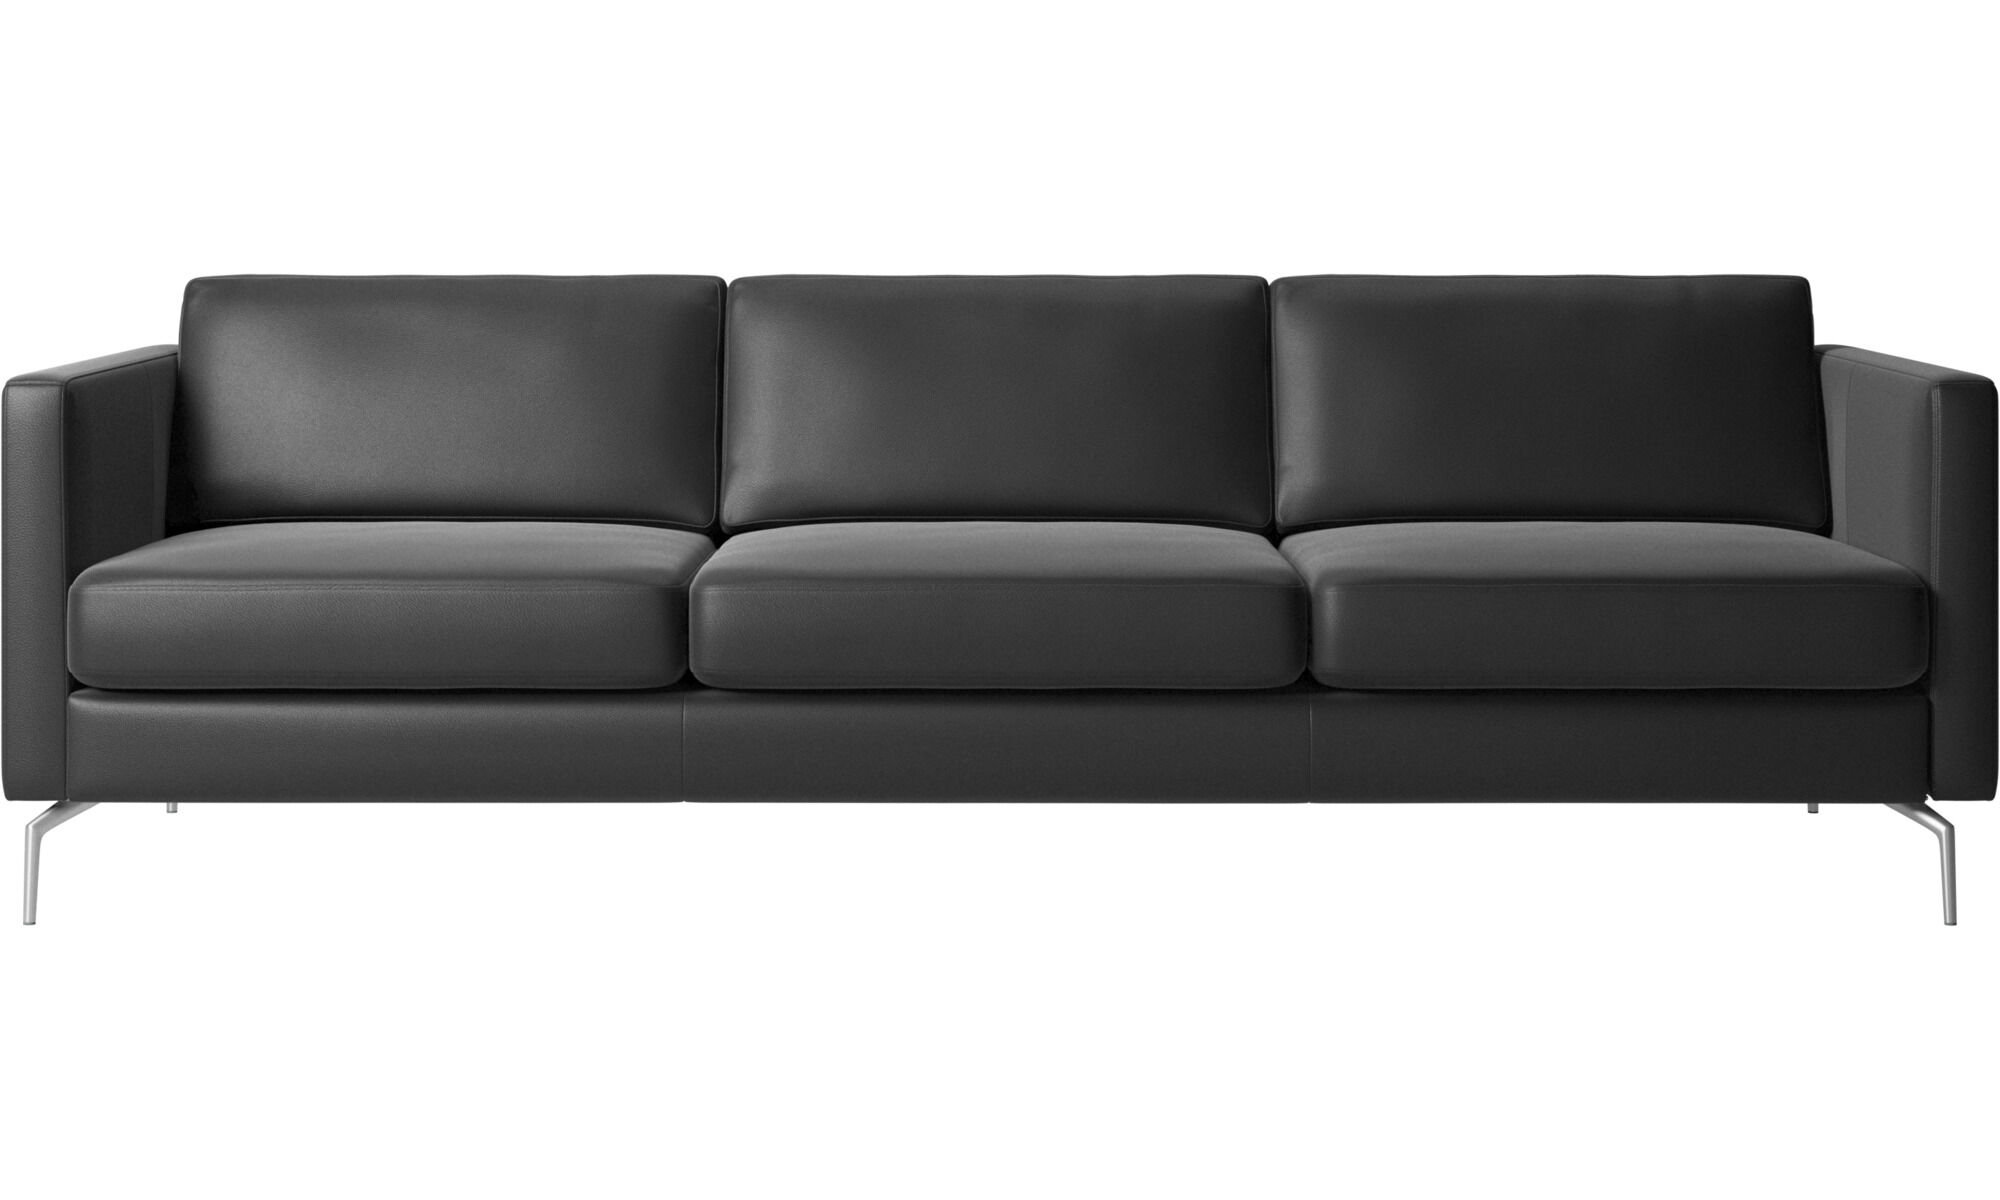 3 Seater Sofas   Osaka Sofa, Regular Seat   Black   Leather